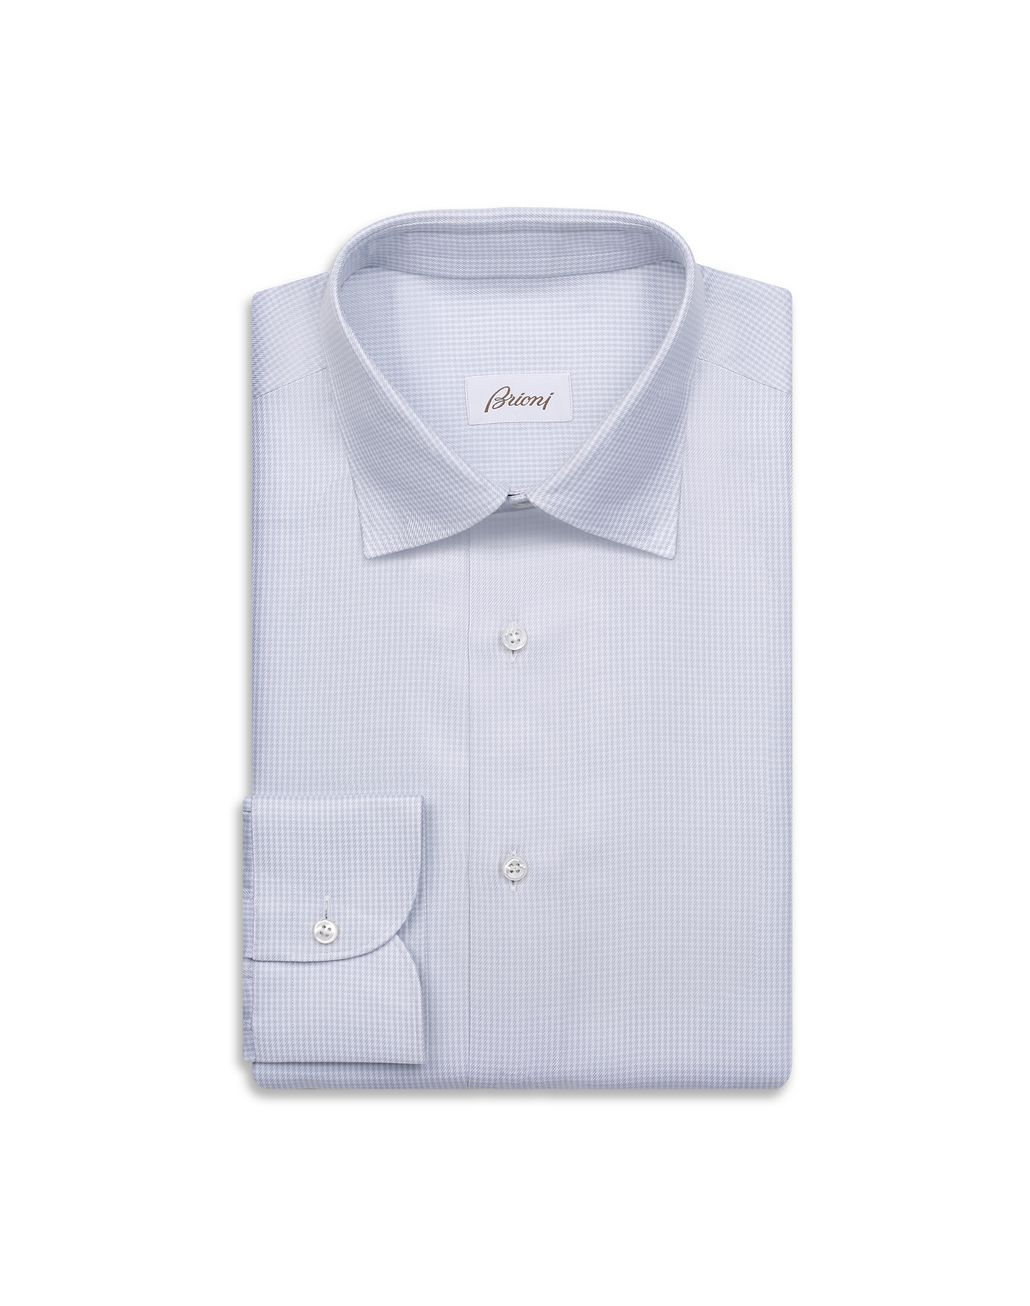 BRIONI White and Lead Gingham Formal Shirt Formal shirt [*** pickupInStoreShippingNotGuaranteed_info ***] f